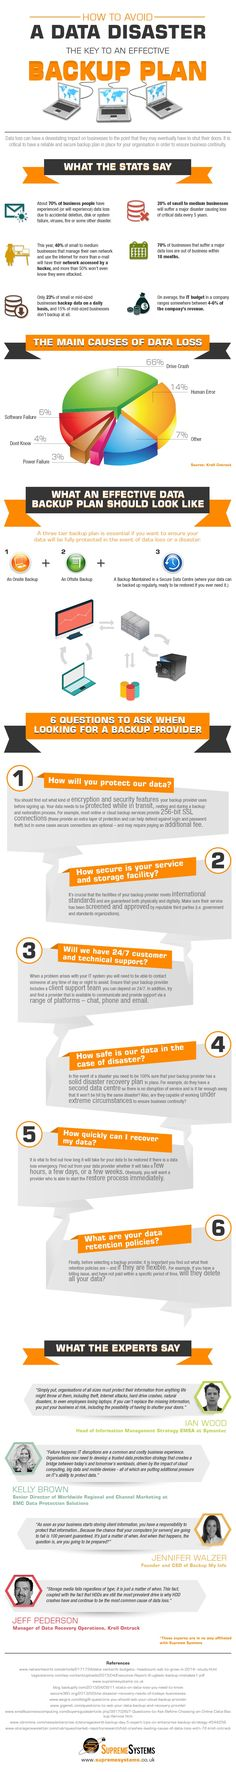 How to Avoid a Data Disaster- Infographic - Data Science Central